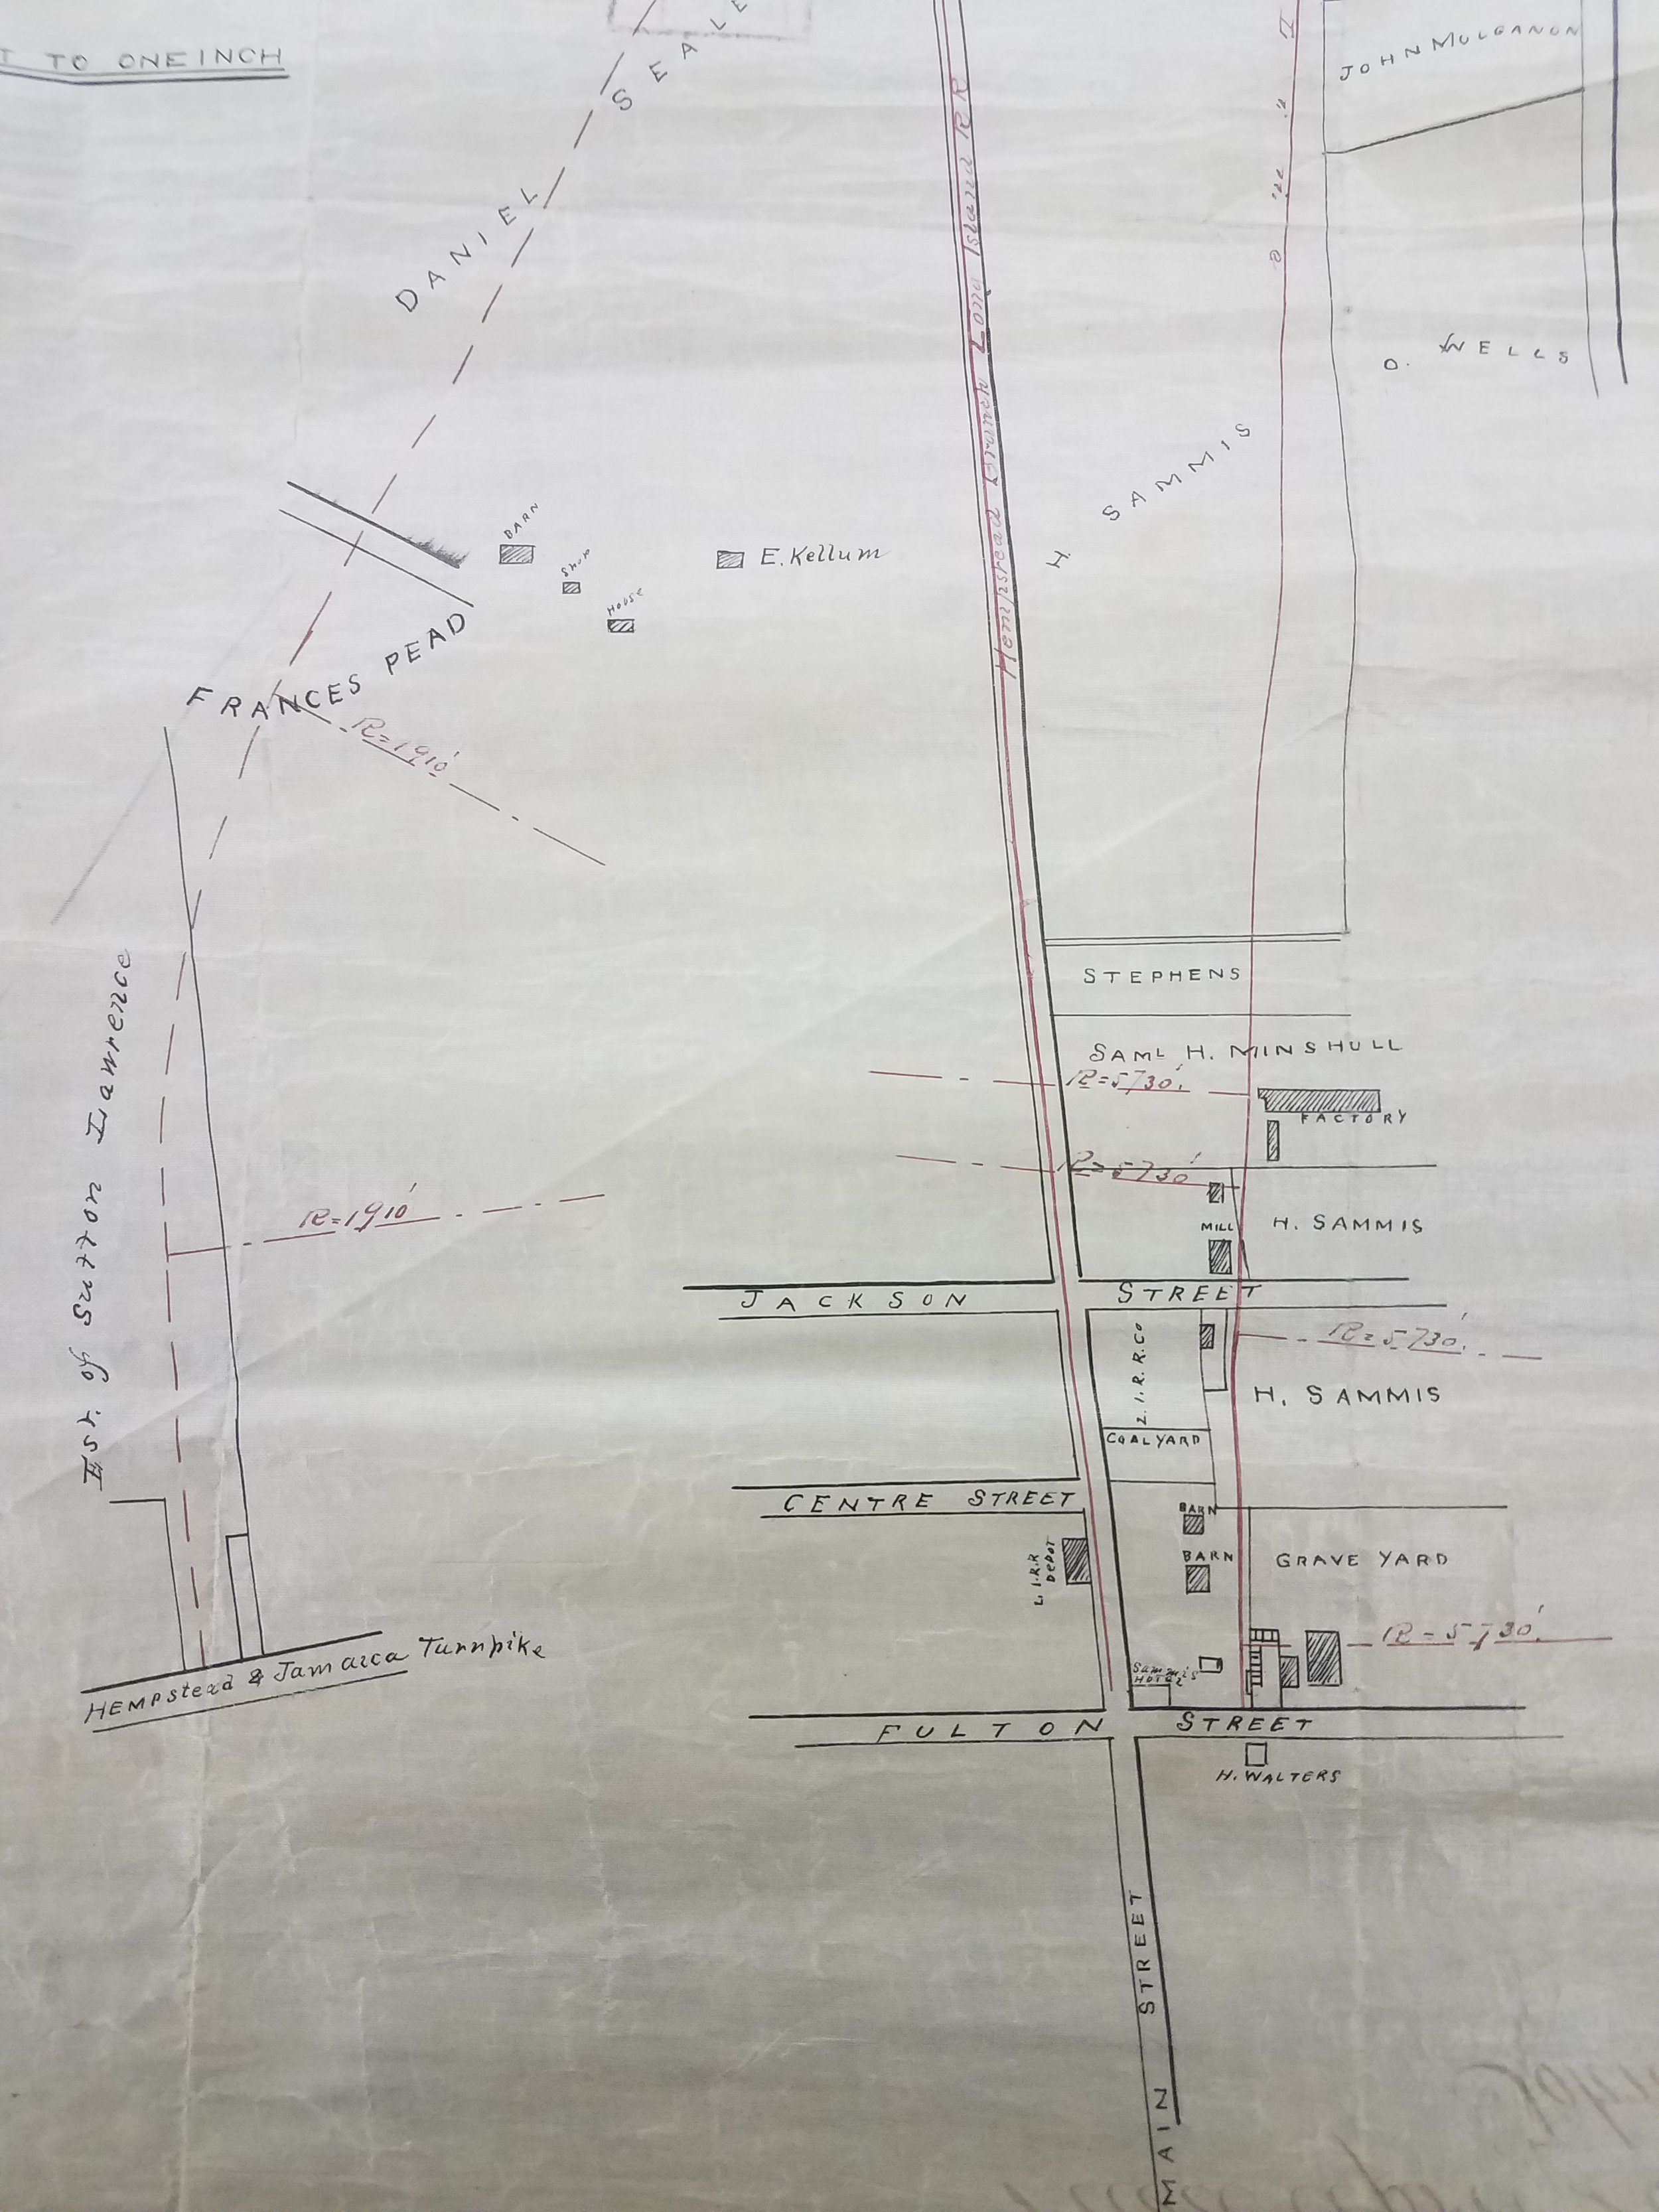 Map of Branch of the Central R.R. of L.I. Leading from Garden City to the Village of Hempstead, 1872. City Register collection, NYC Municipal Archives. The graveyard noted in the bottom-right is now in the vicinity of Denton Green Park, Hempstead.